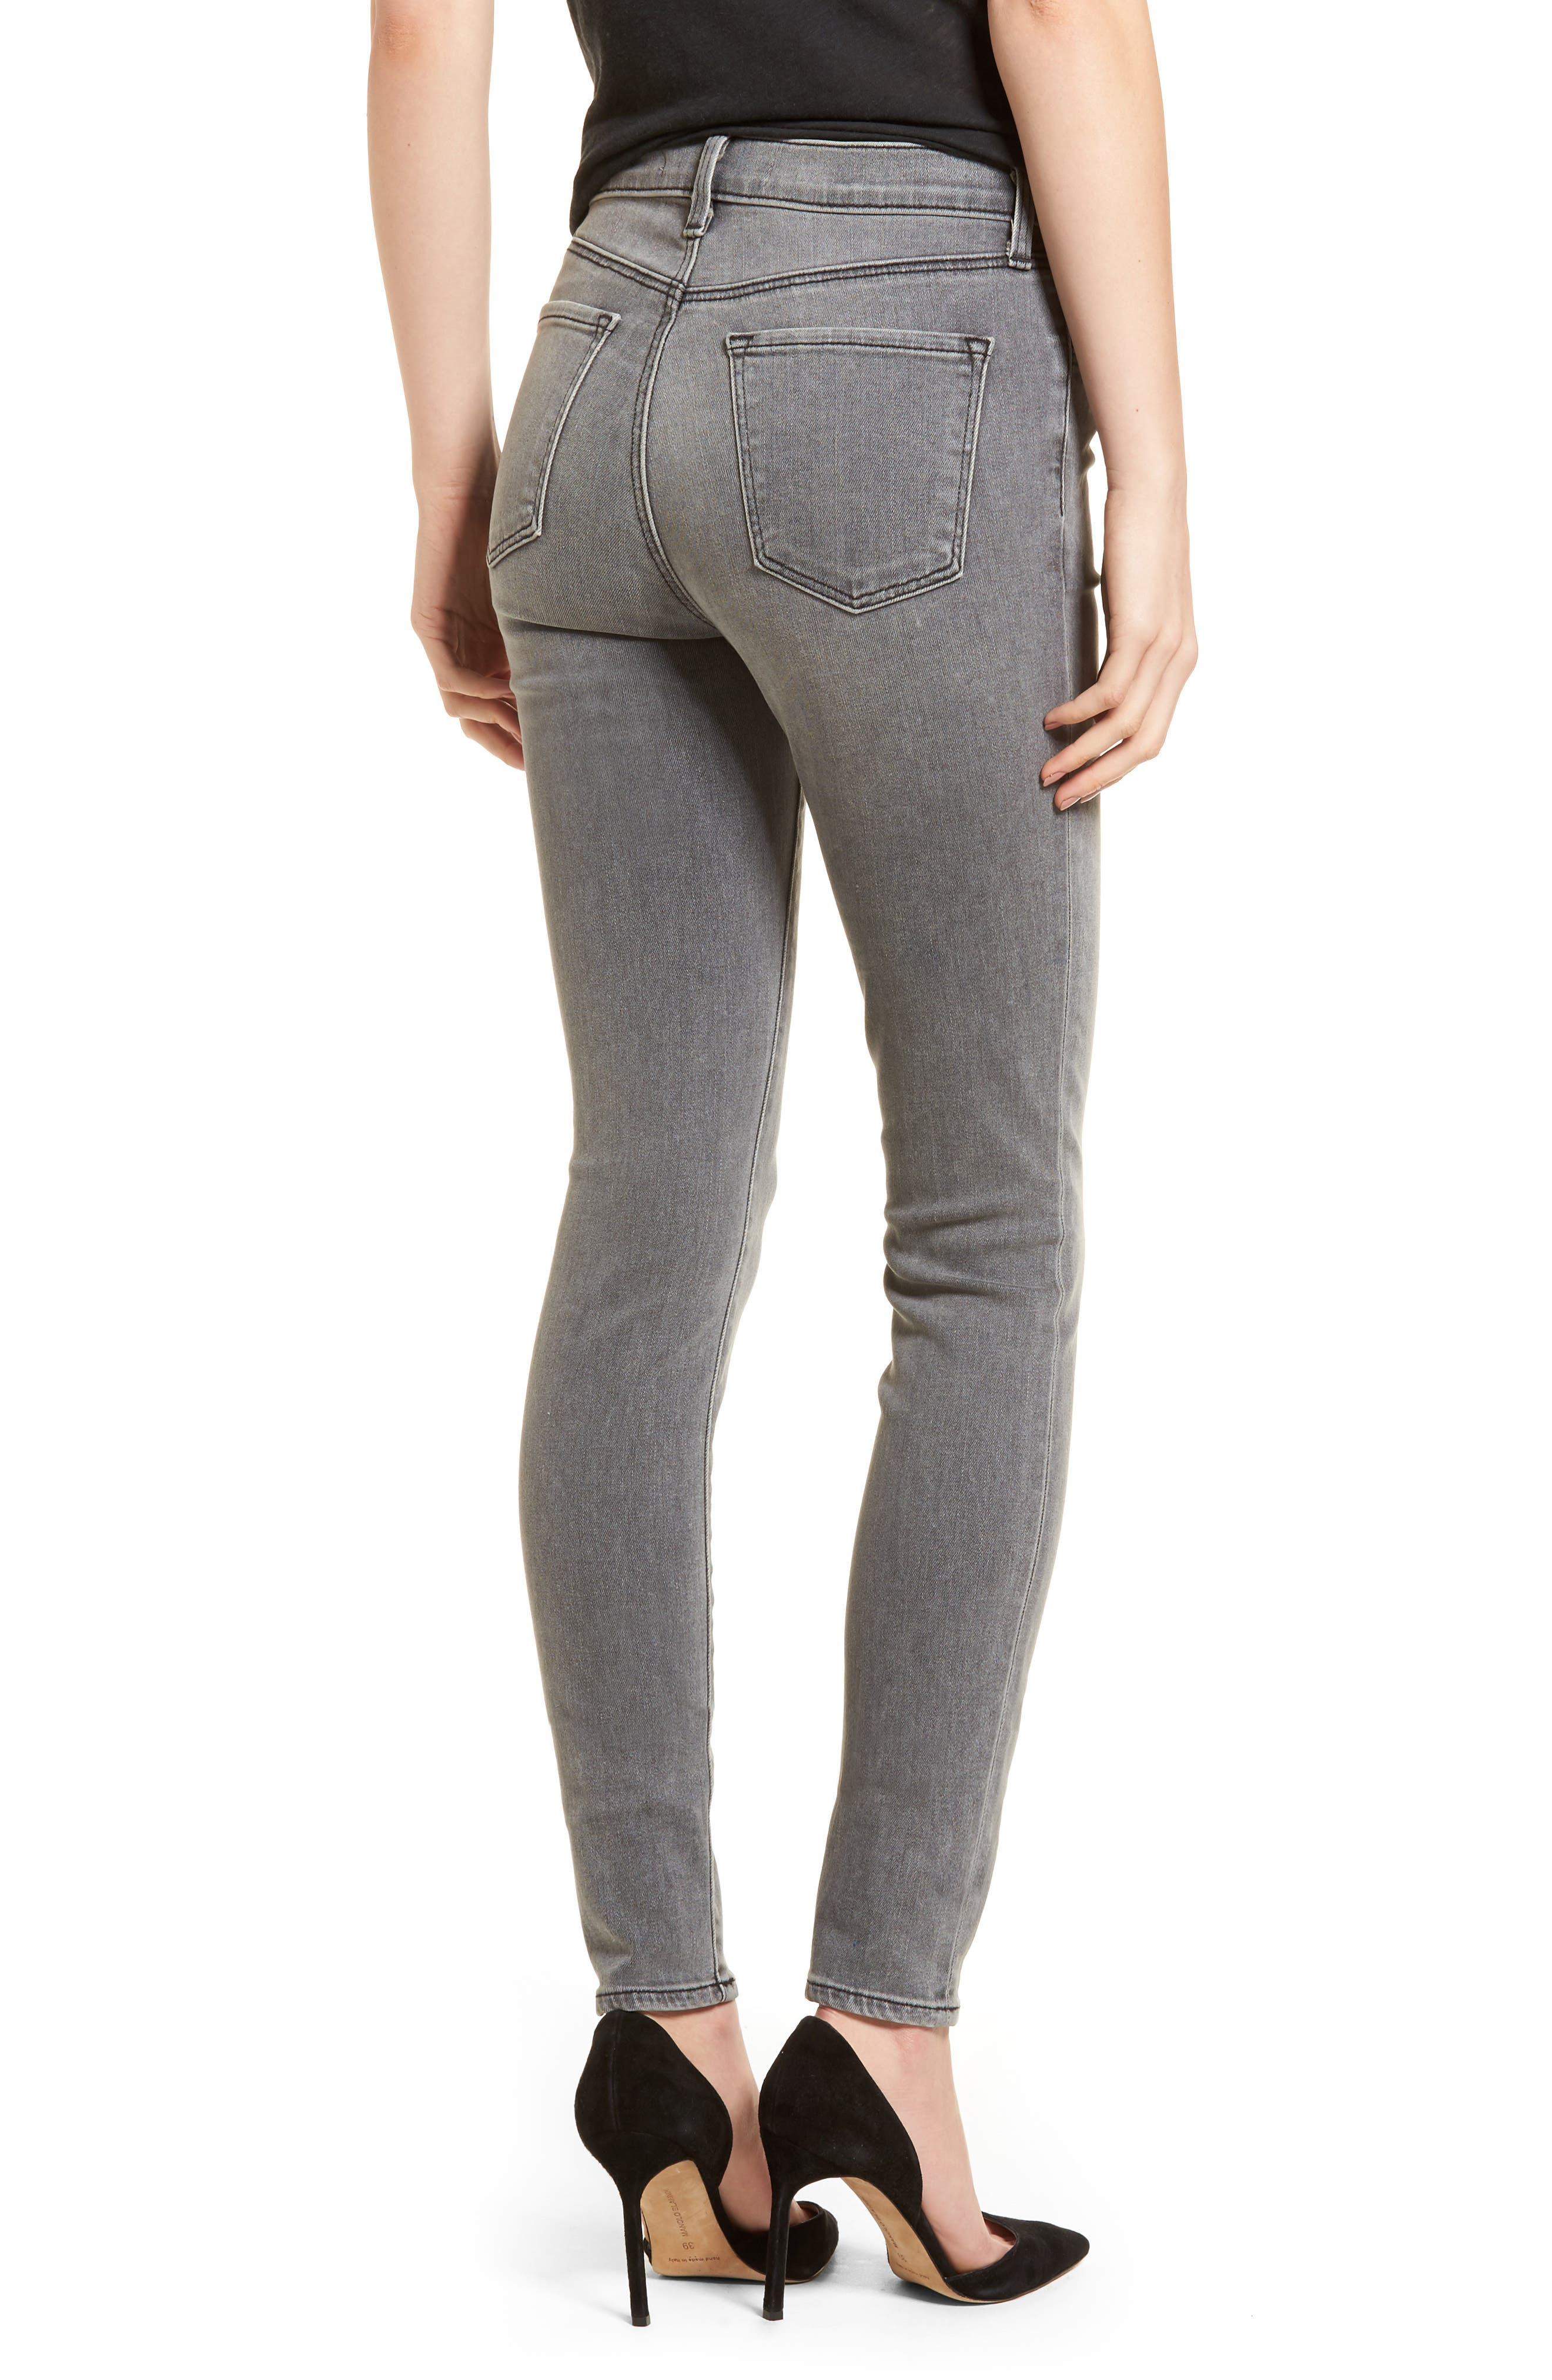 Alternate Image 2  - J Brand Maria High Waist Skinny Jeans (Pebble) (Nordstrom Exclusive)